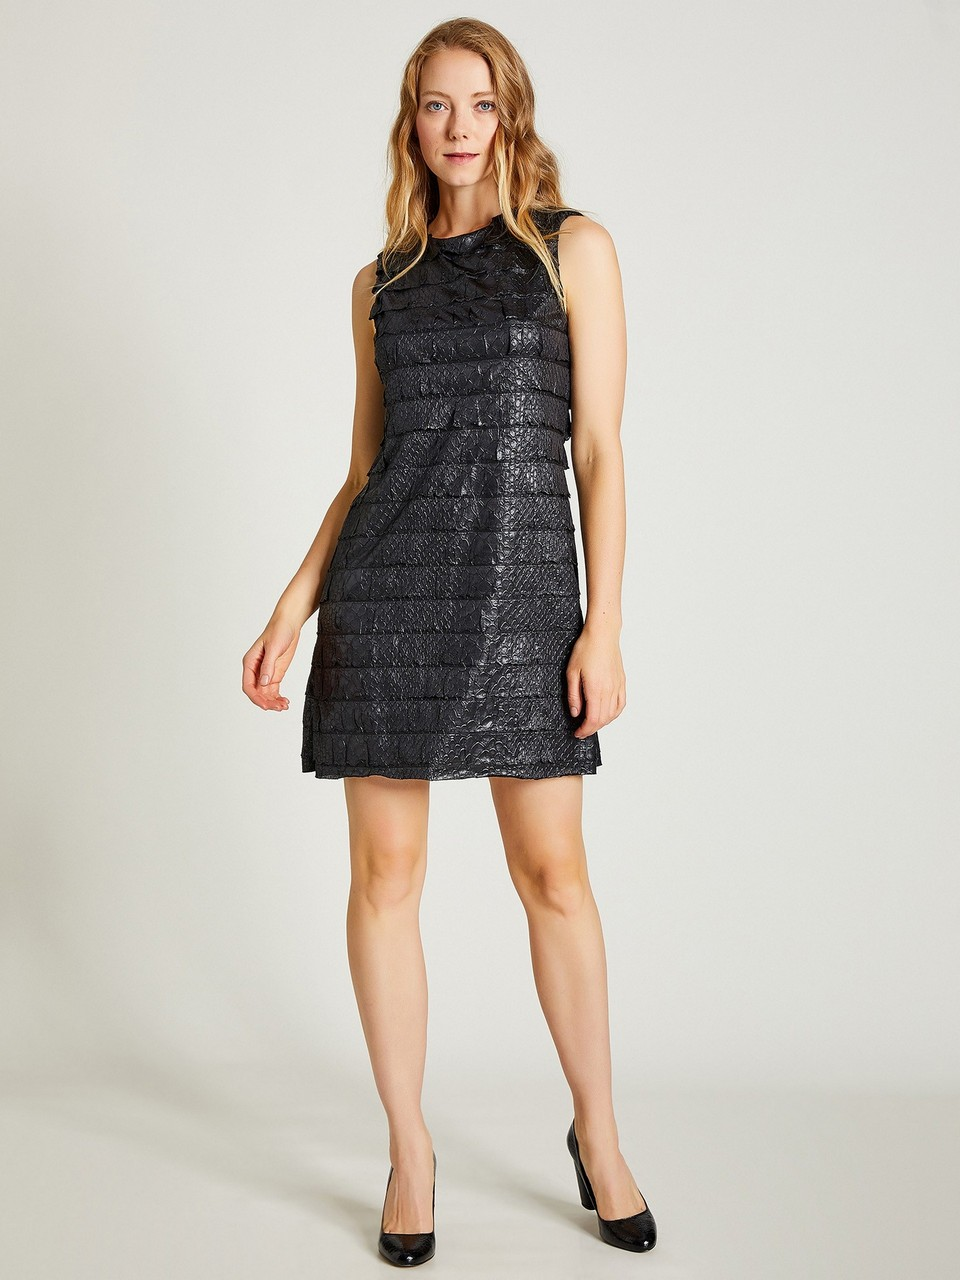 Round Neck Sleeveless Crocodile Look Dress